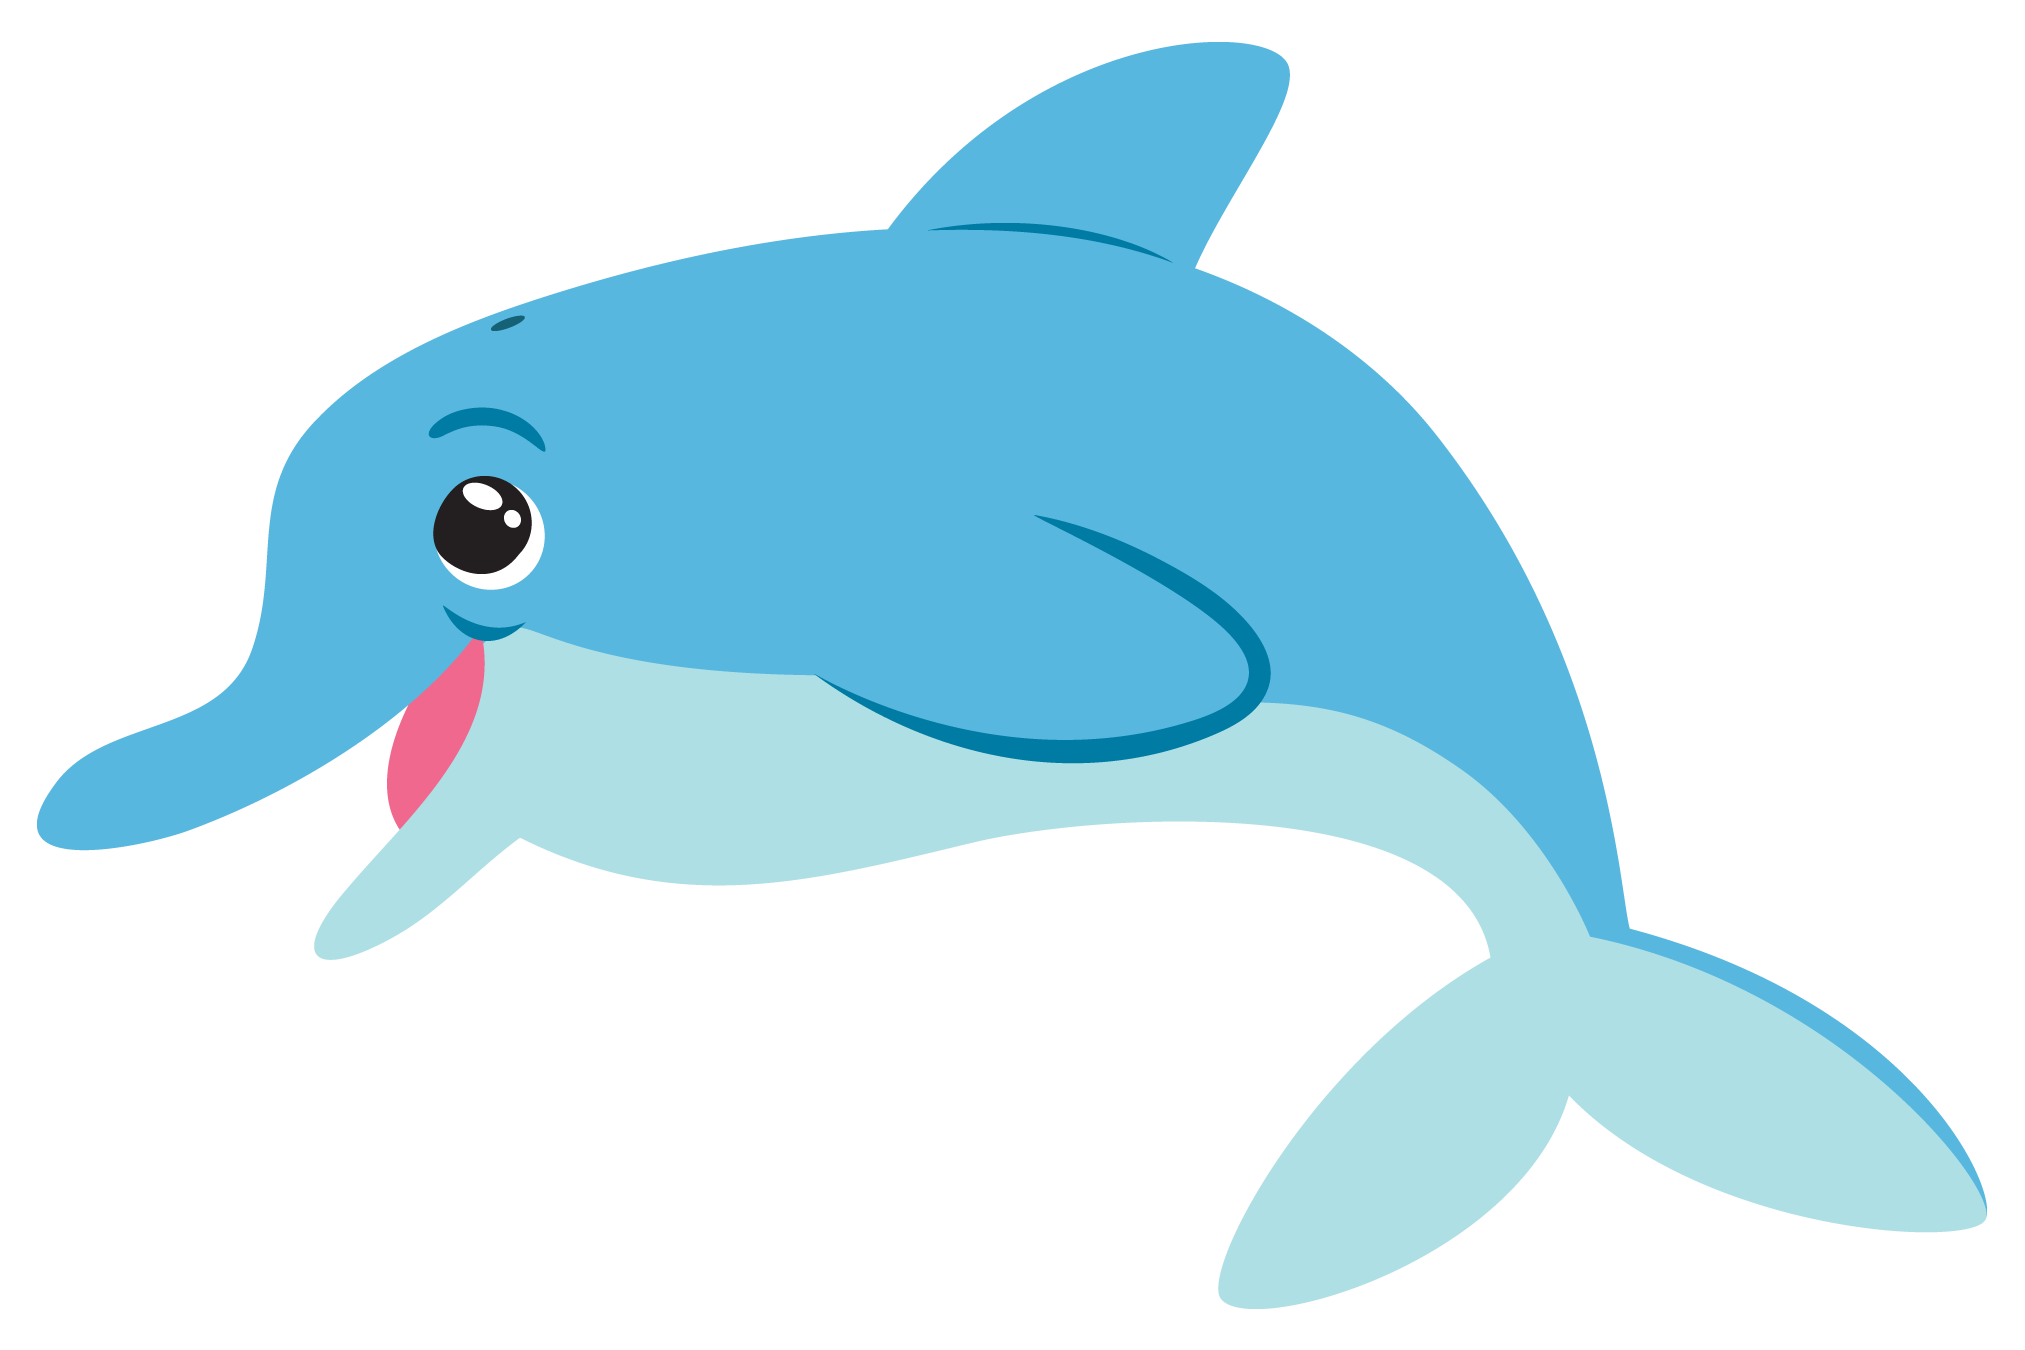 Cartoon Dolphin Images - ClipArt Best